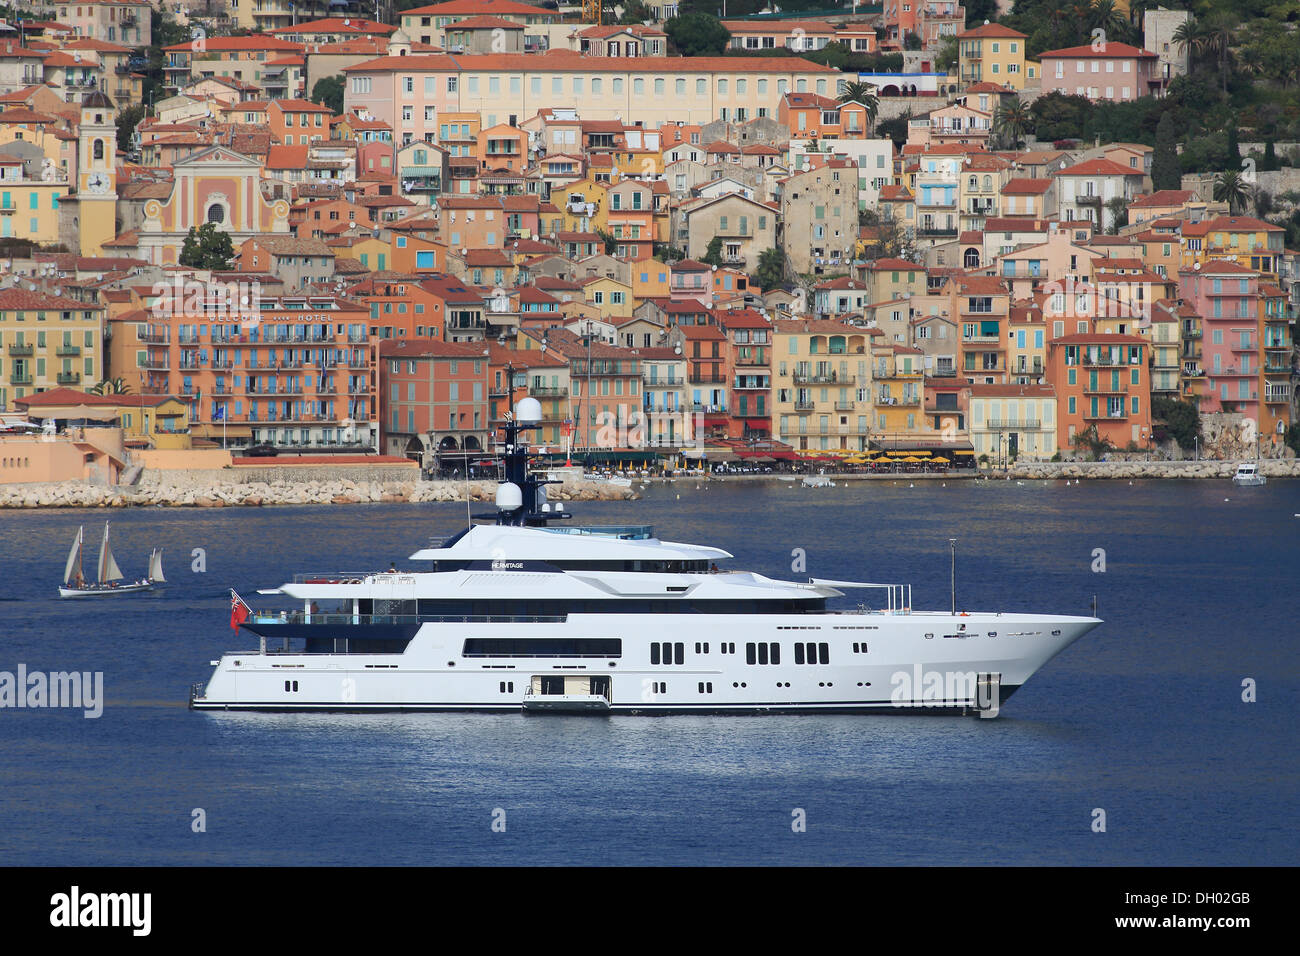 Hermitage, a cruiser built by Luerssen Yachts, length: 68.15 m, built in 2011, anchored off the bay of Villefranche Stock Photo